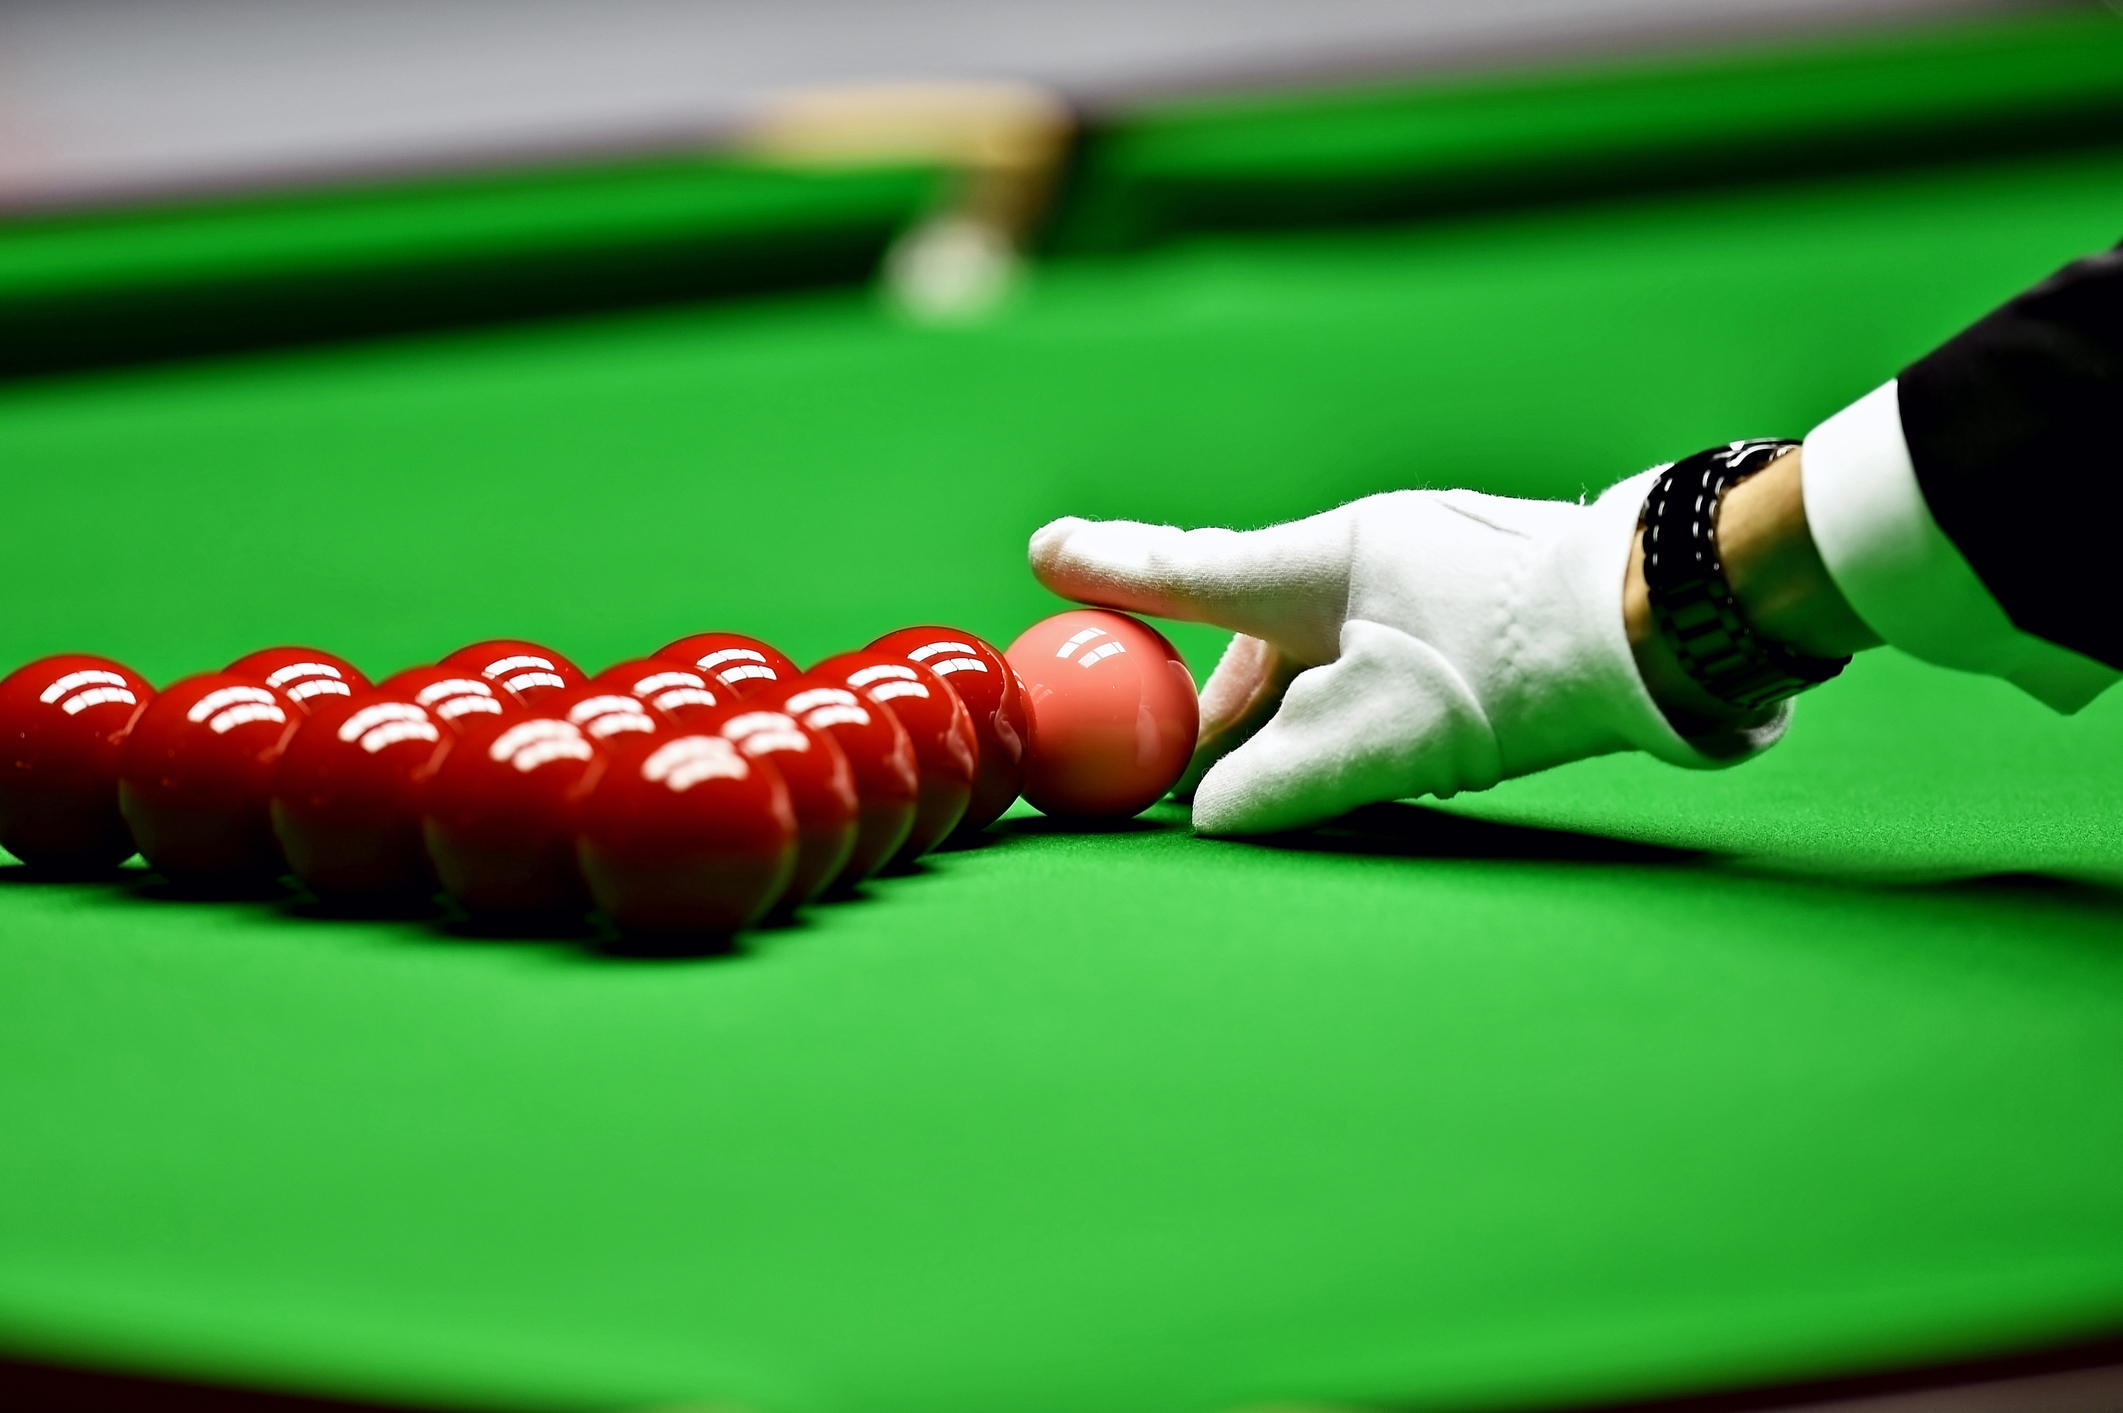 Snooker in September